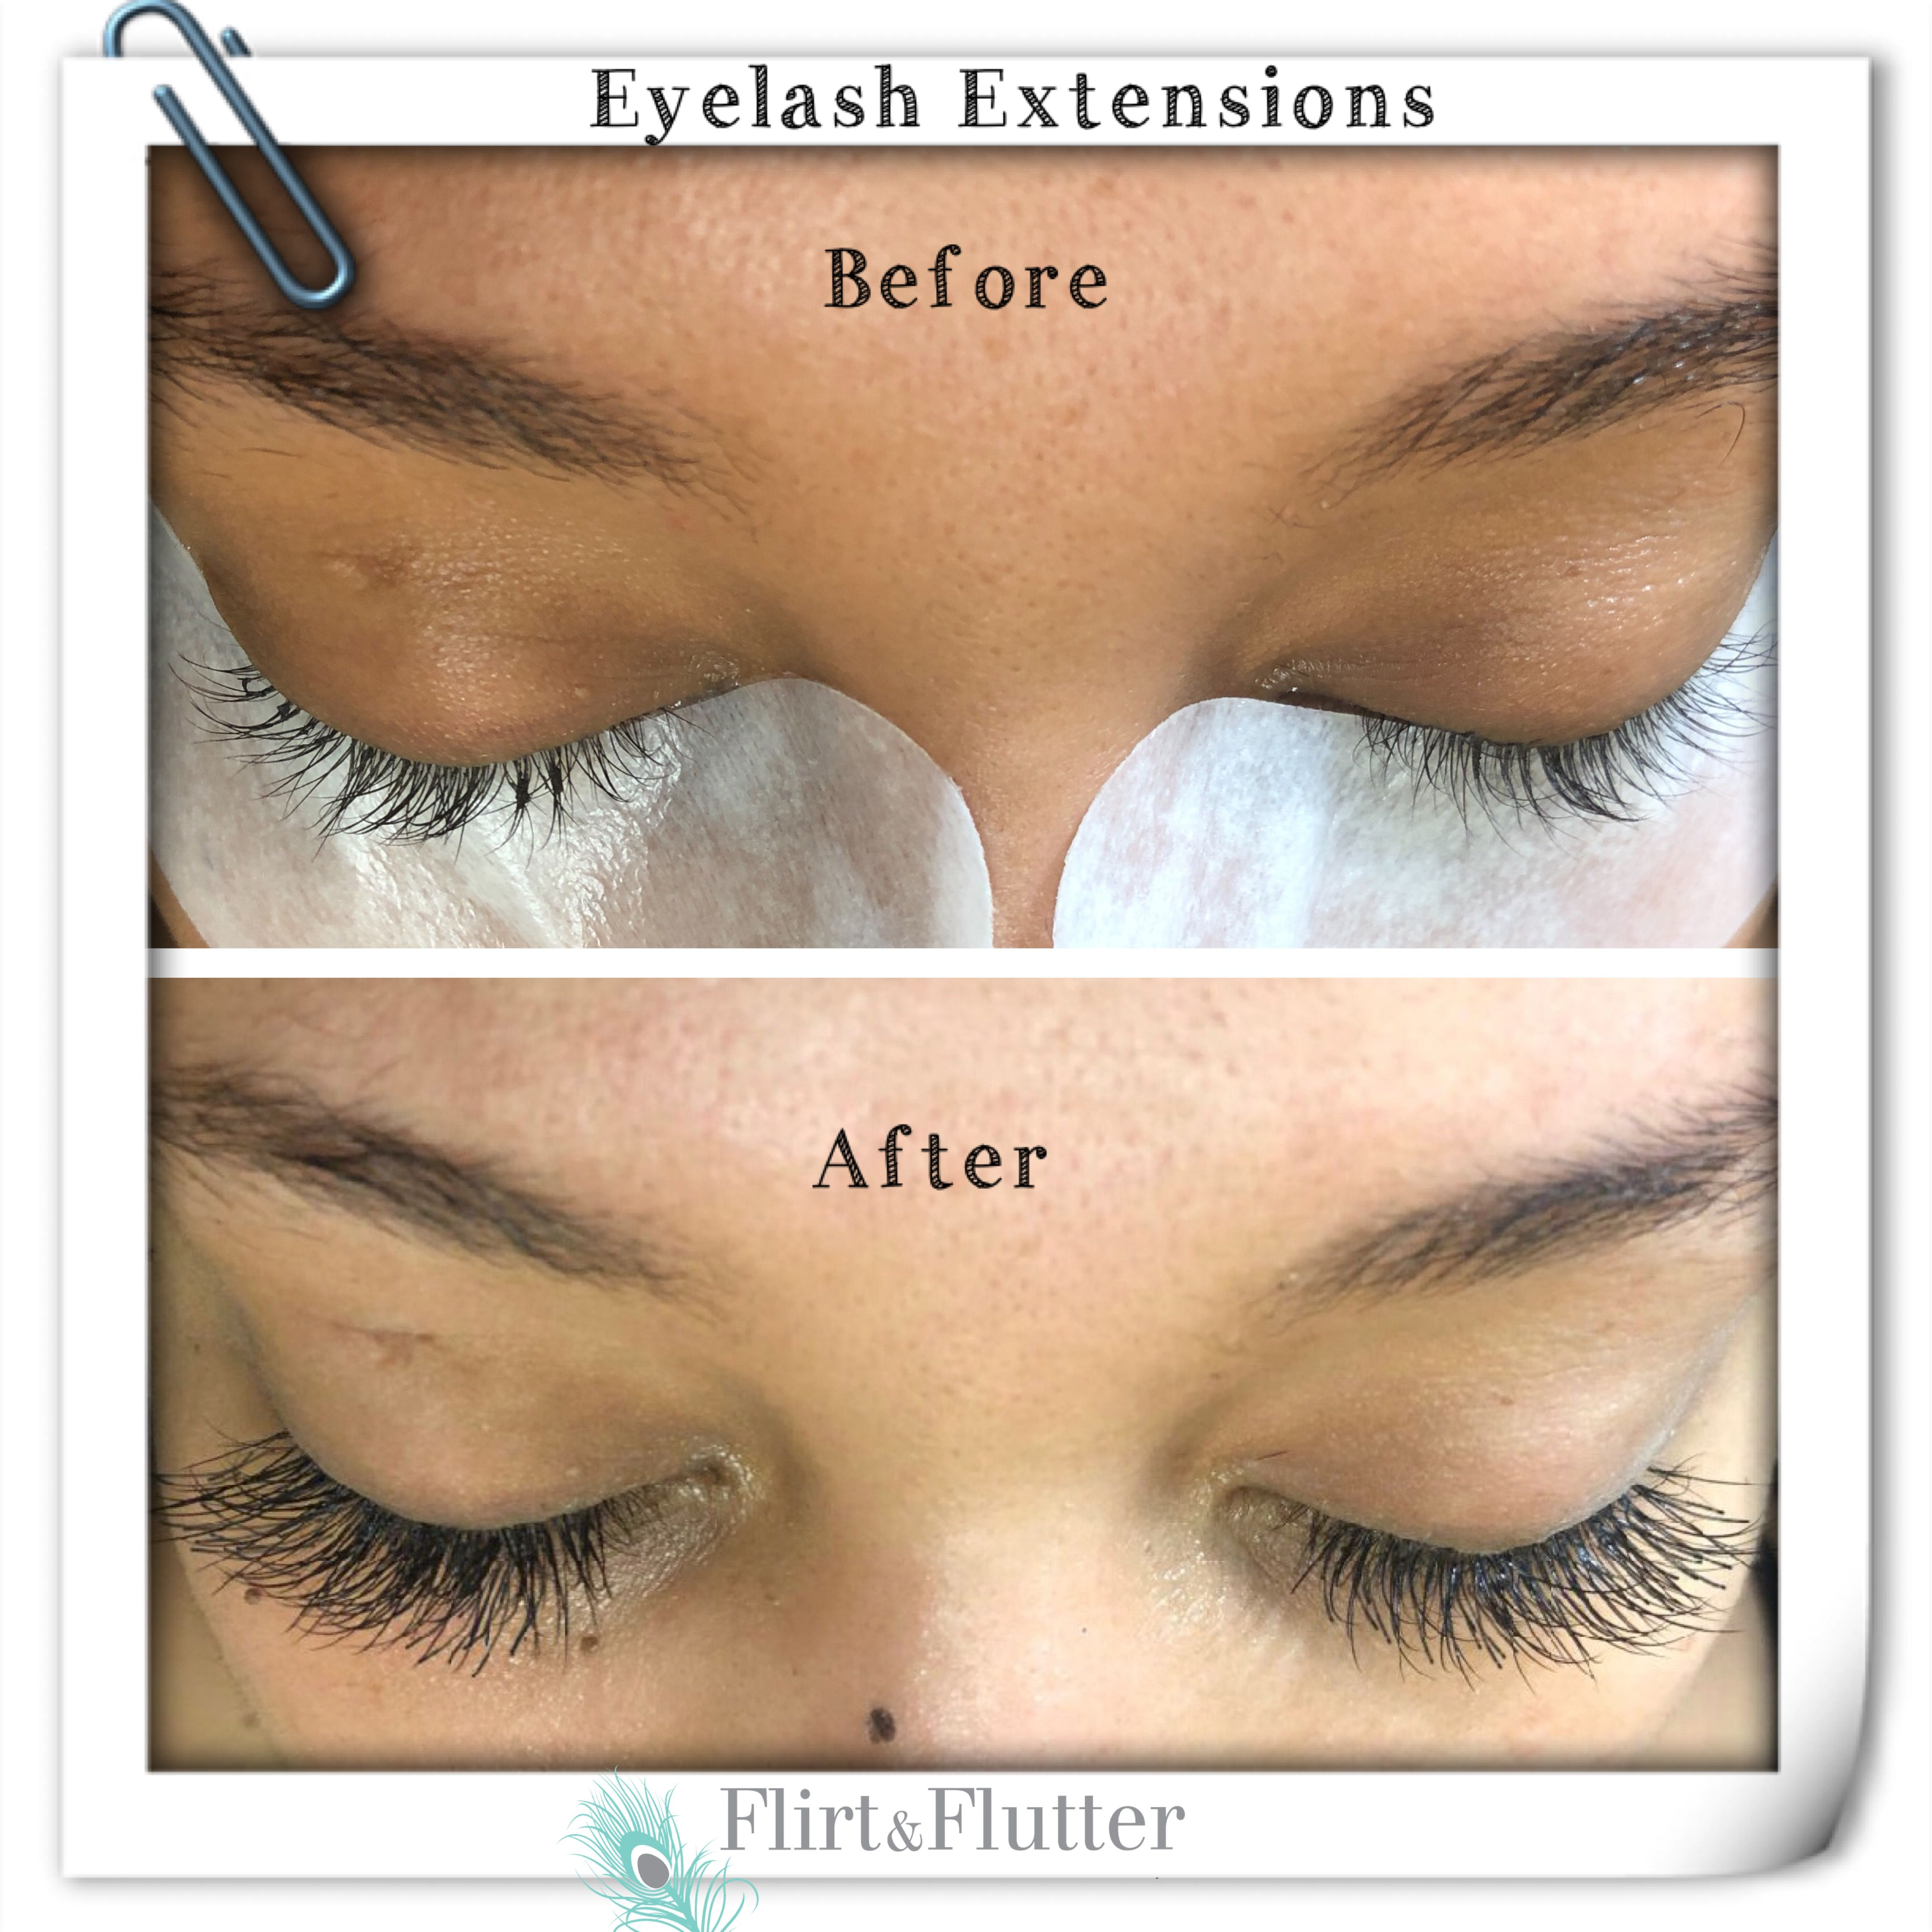 Looking  for great #eyelashextensions services in #miami Check Out #FlirtNFlutter We are located in the #Coralgables and #Miramar areas. Book your appointment. Today for #minkeyelashextensions #volumelashes #lashes #lashlift #eyebrowshaping #browtint and so much more We service #Brickell #miamibeach #sobe #southbeach #kendall #homestead #plantation #cutlerbay #wynwood #midtownmiami #atlanta #atl #florida #georgia #eyelashextension courses